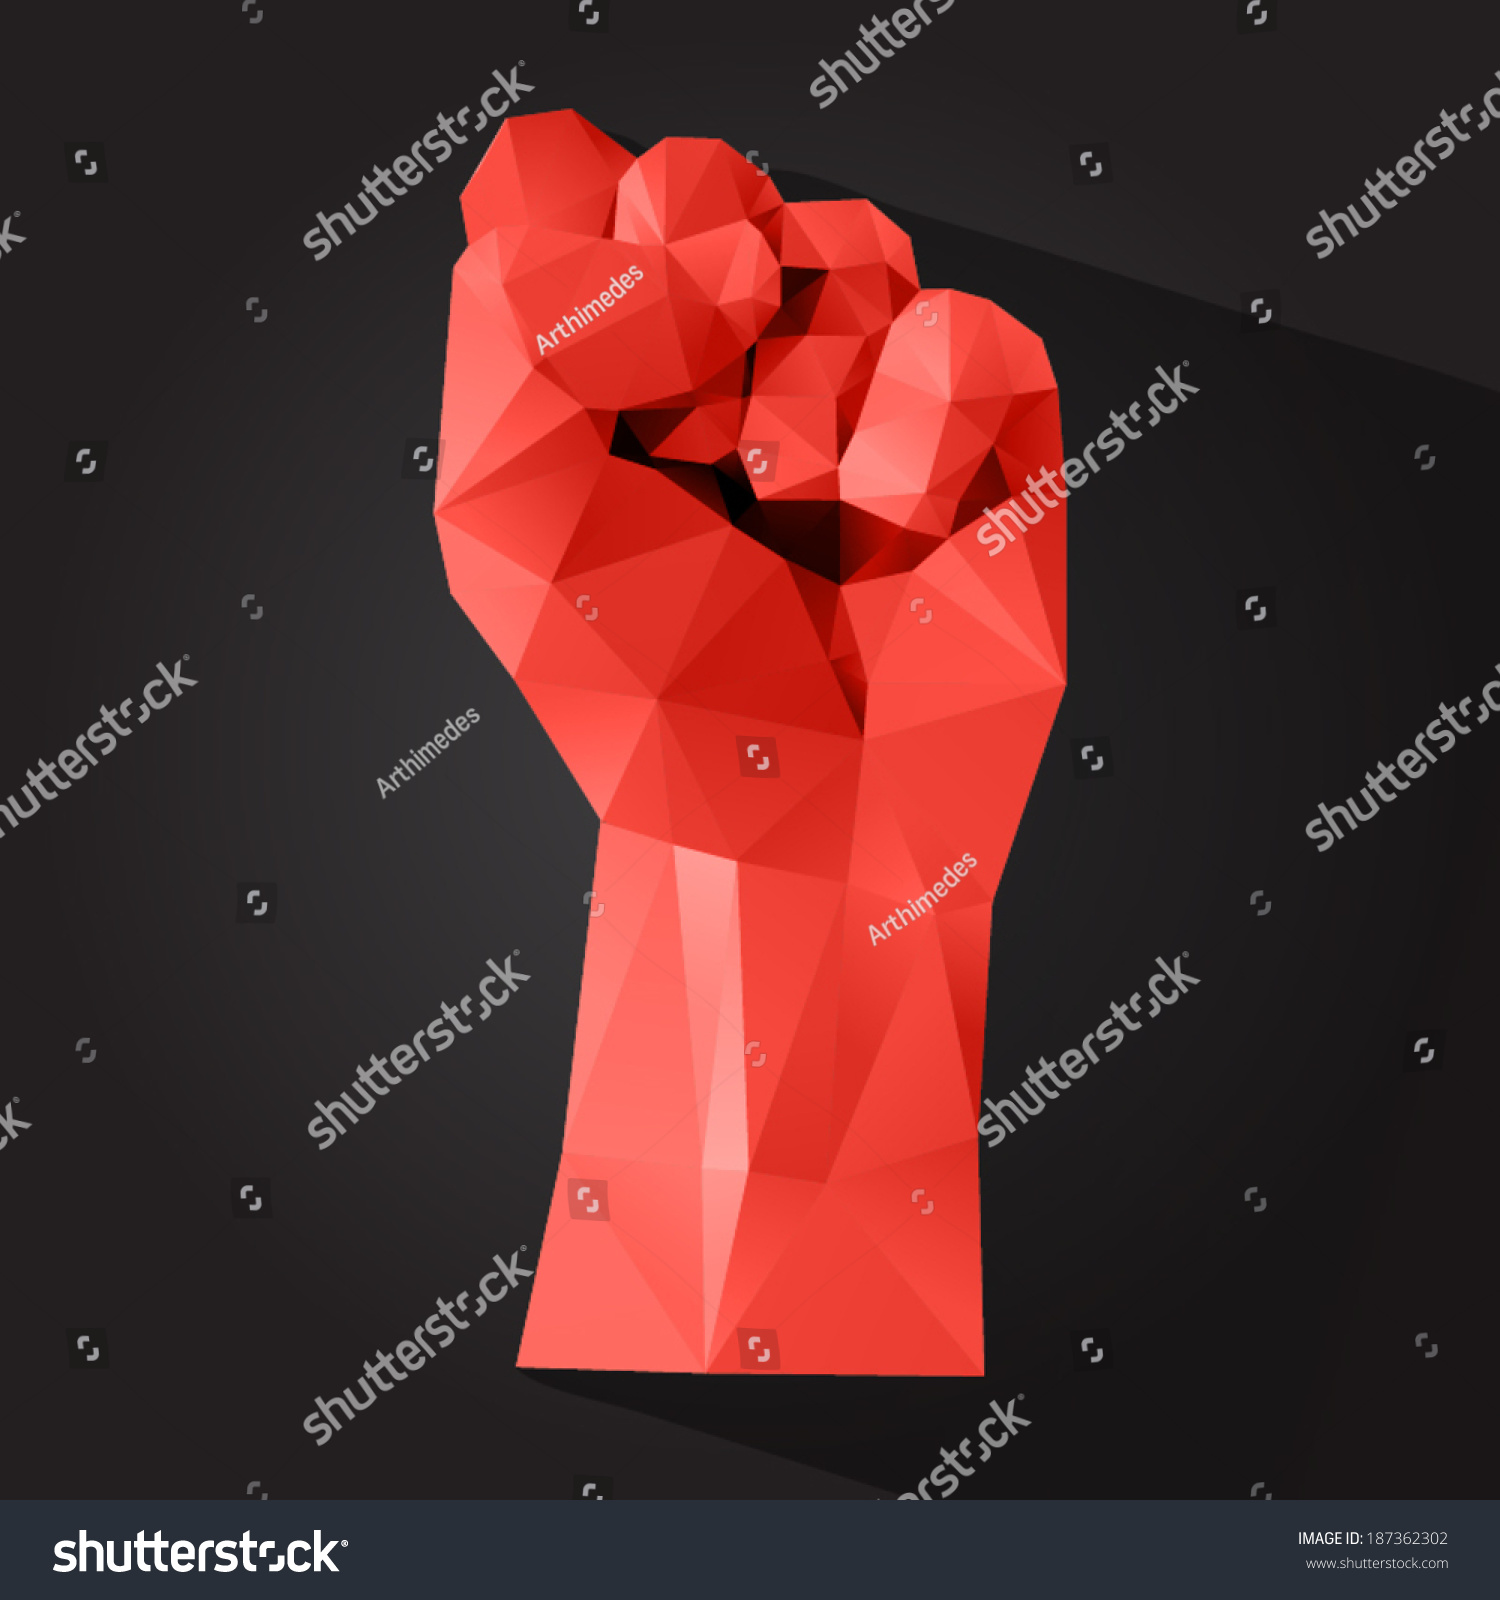 Polygonal Style Clenched Fist On Dark Stock Vector ... - photo#47